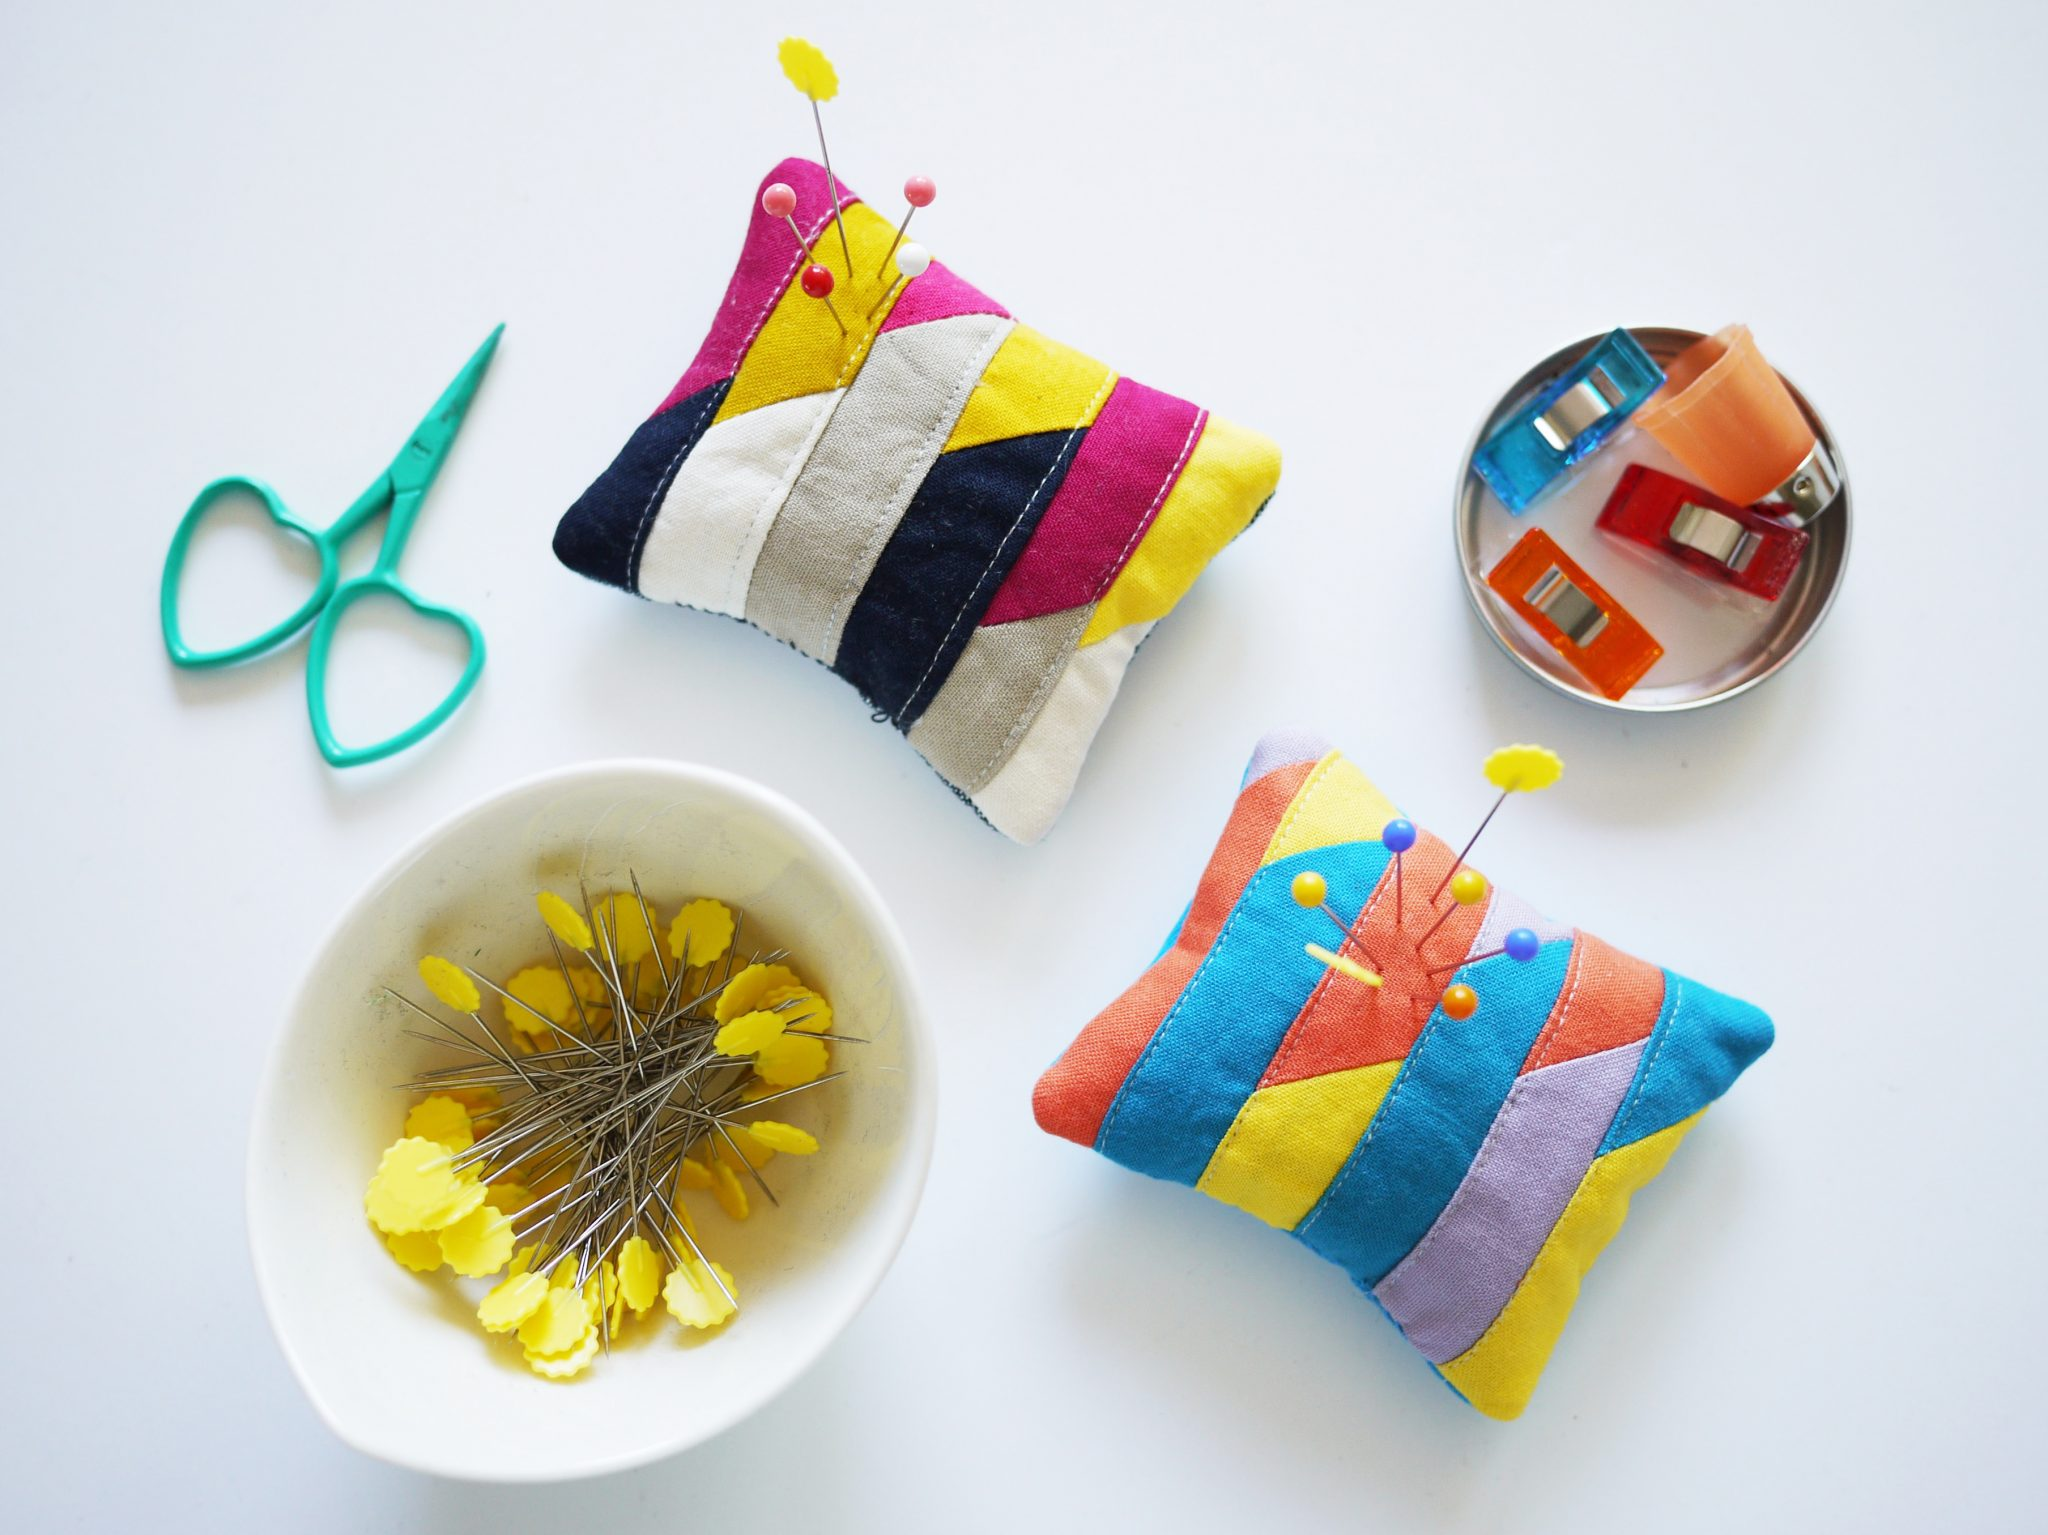 3rd Story Workshop - Pin Cushions, Colour